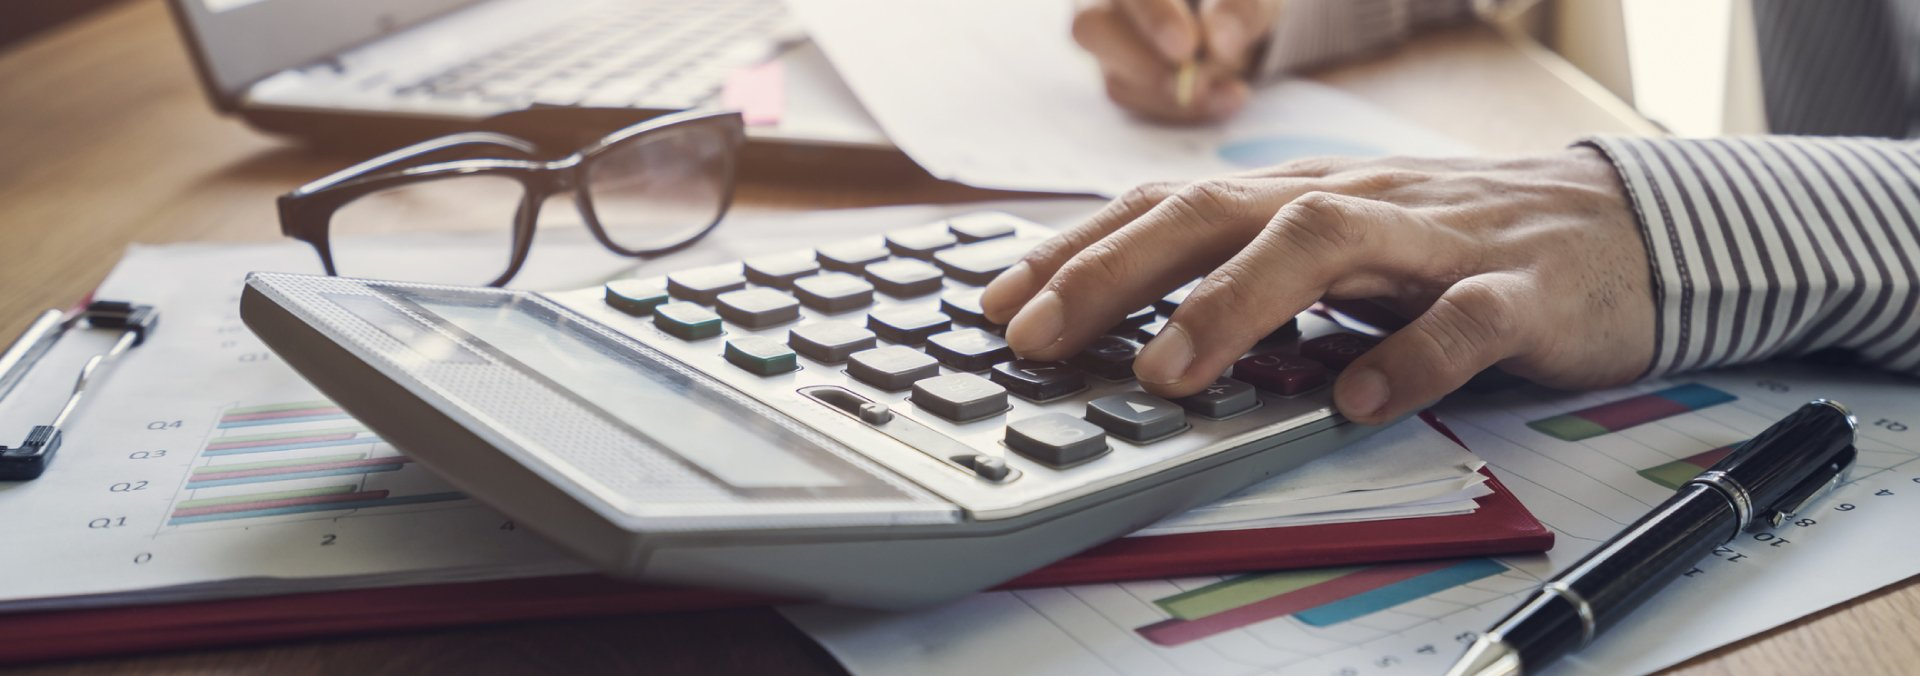 Woman Working on Budget